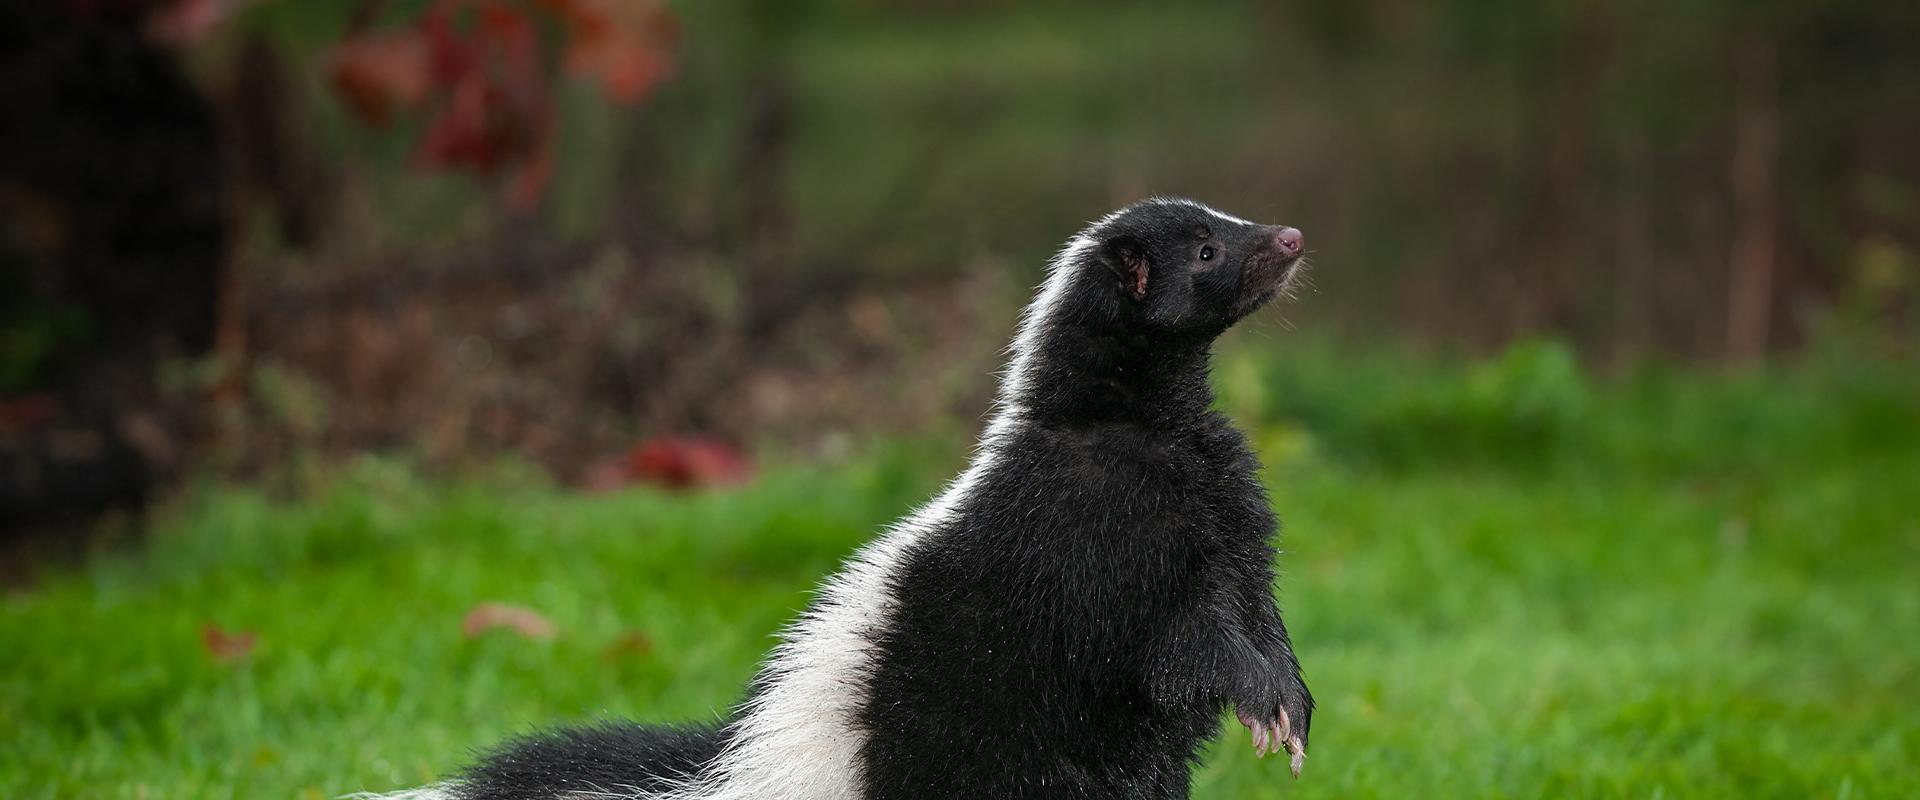 skunk standing in the grass